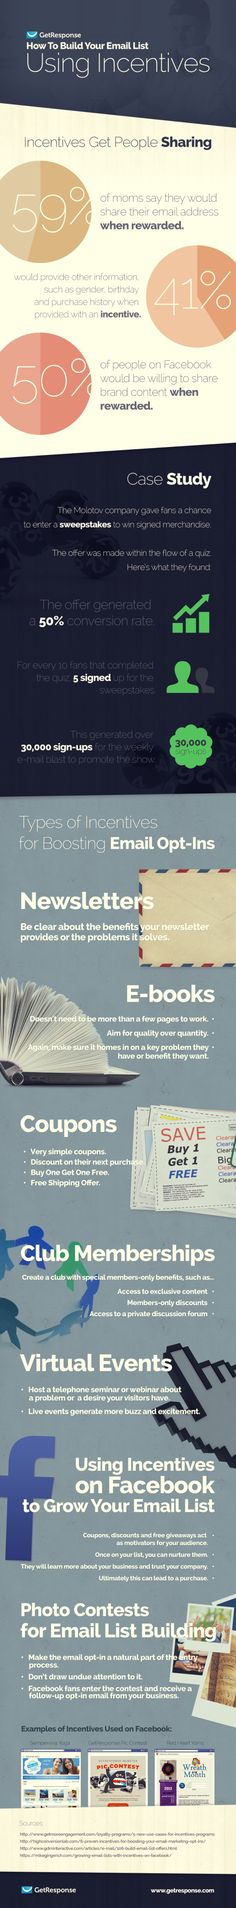 How to build your #email list with incentives